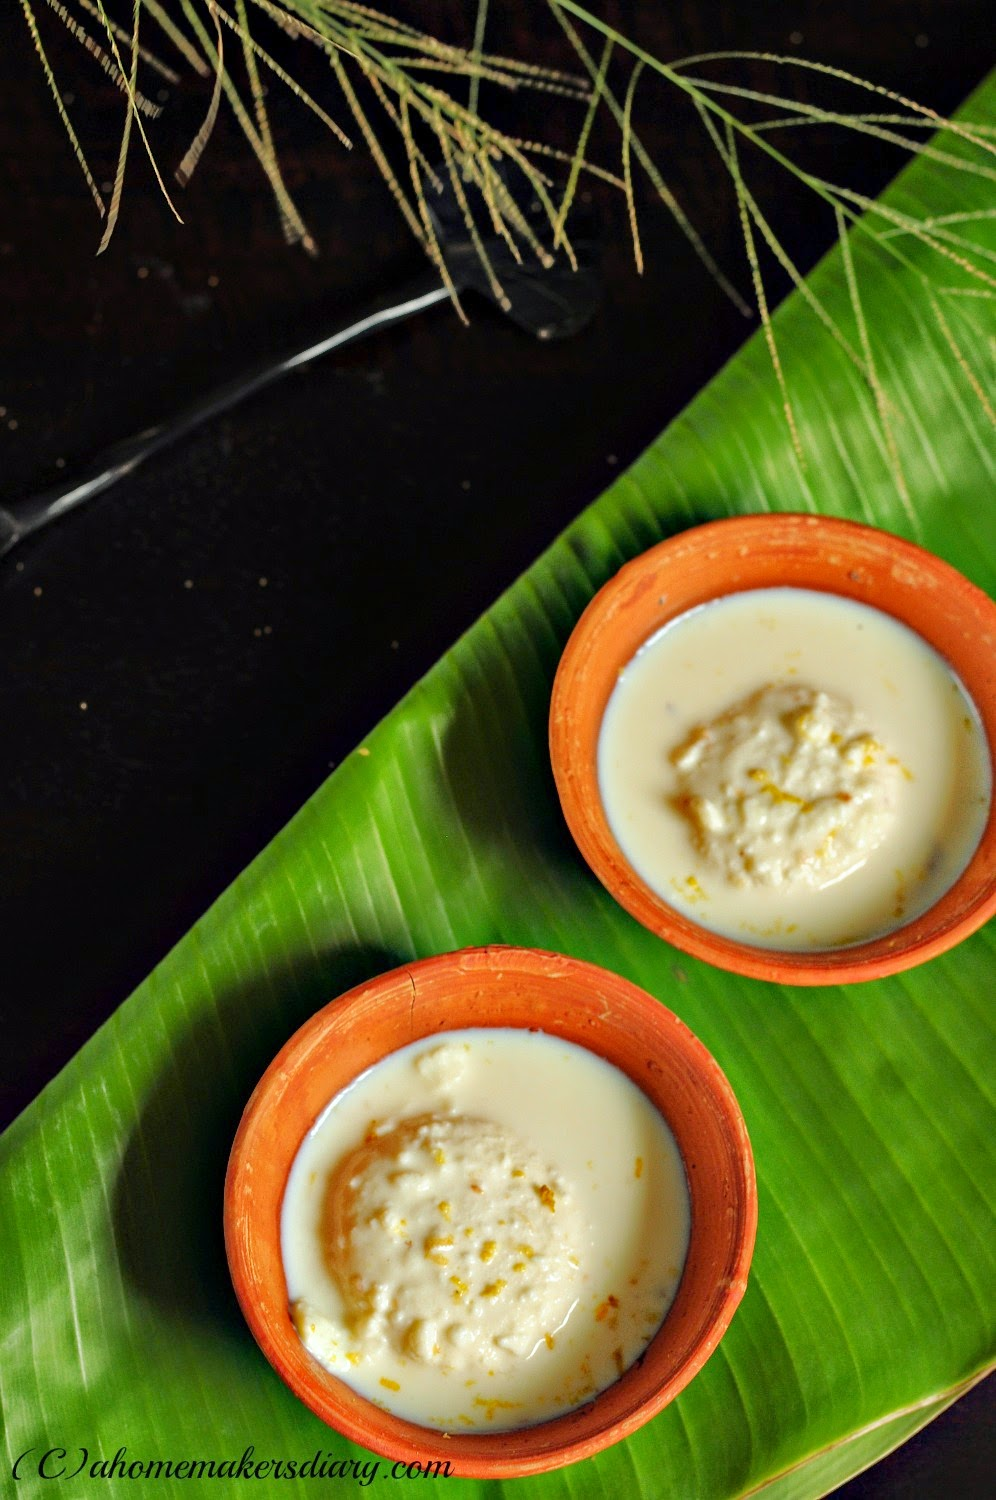 Rasmalai and my very innovative take on it